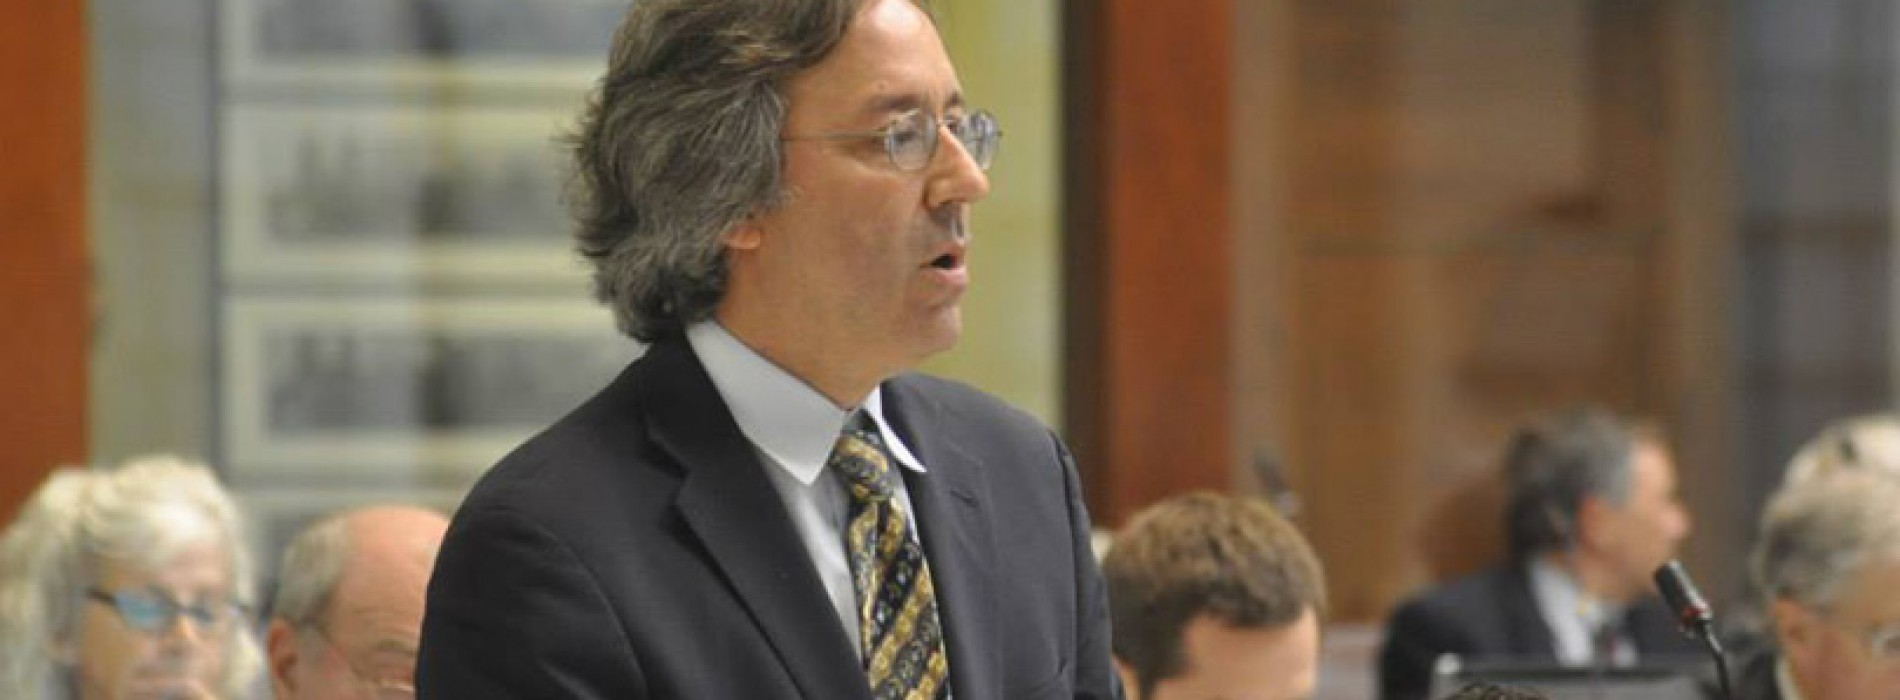 Democrats force review of Gov. LePage's cuts to mental health care